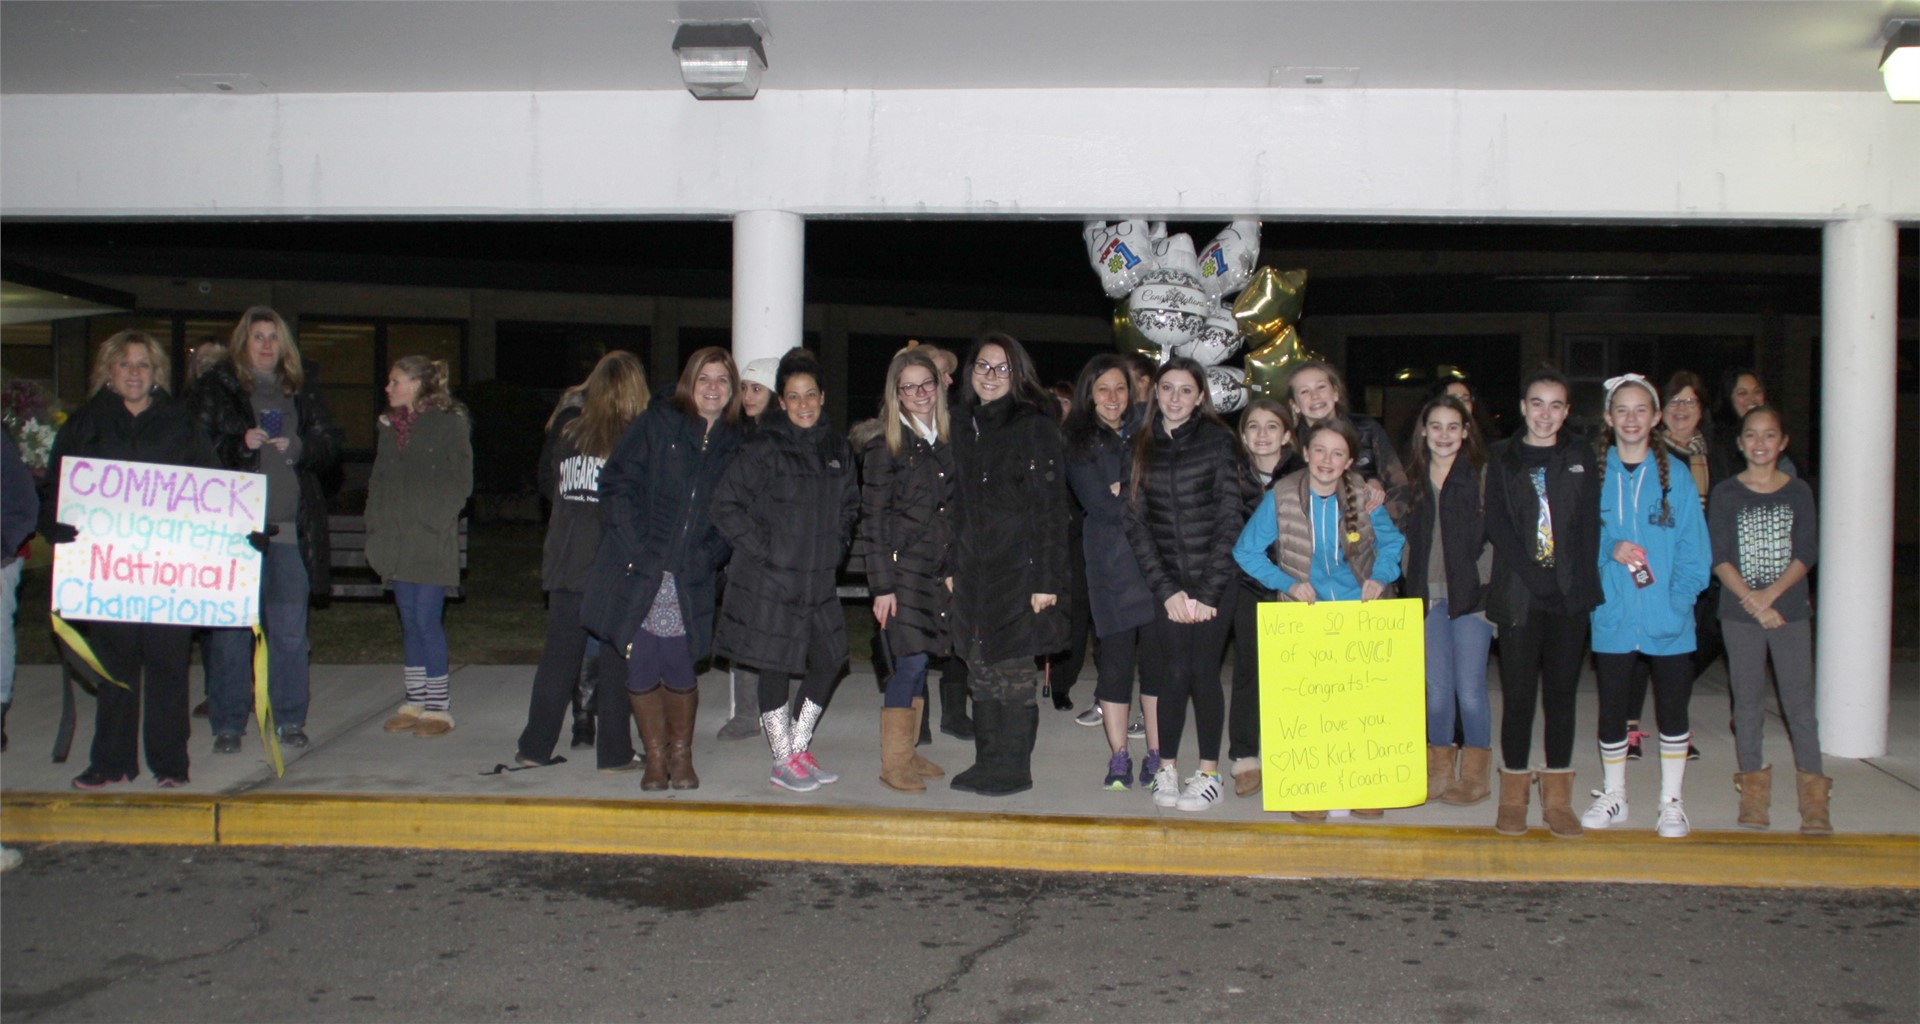 Thanks to everyone who greeted the girls!